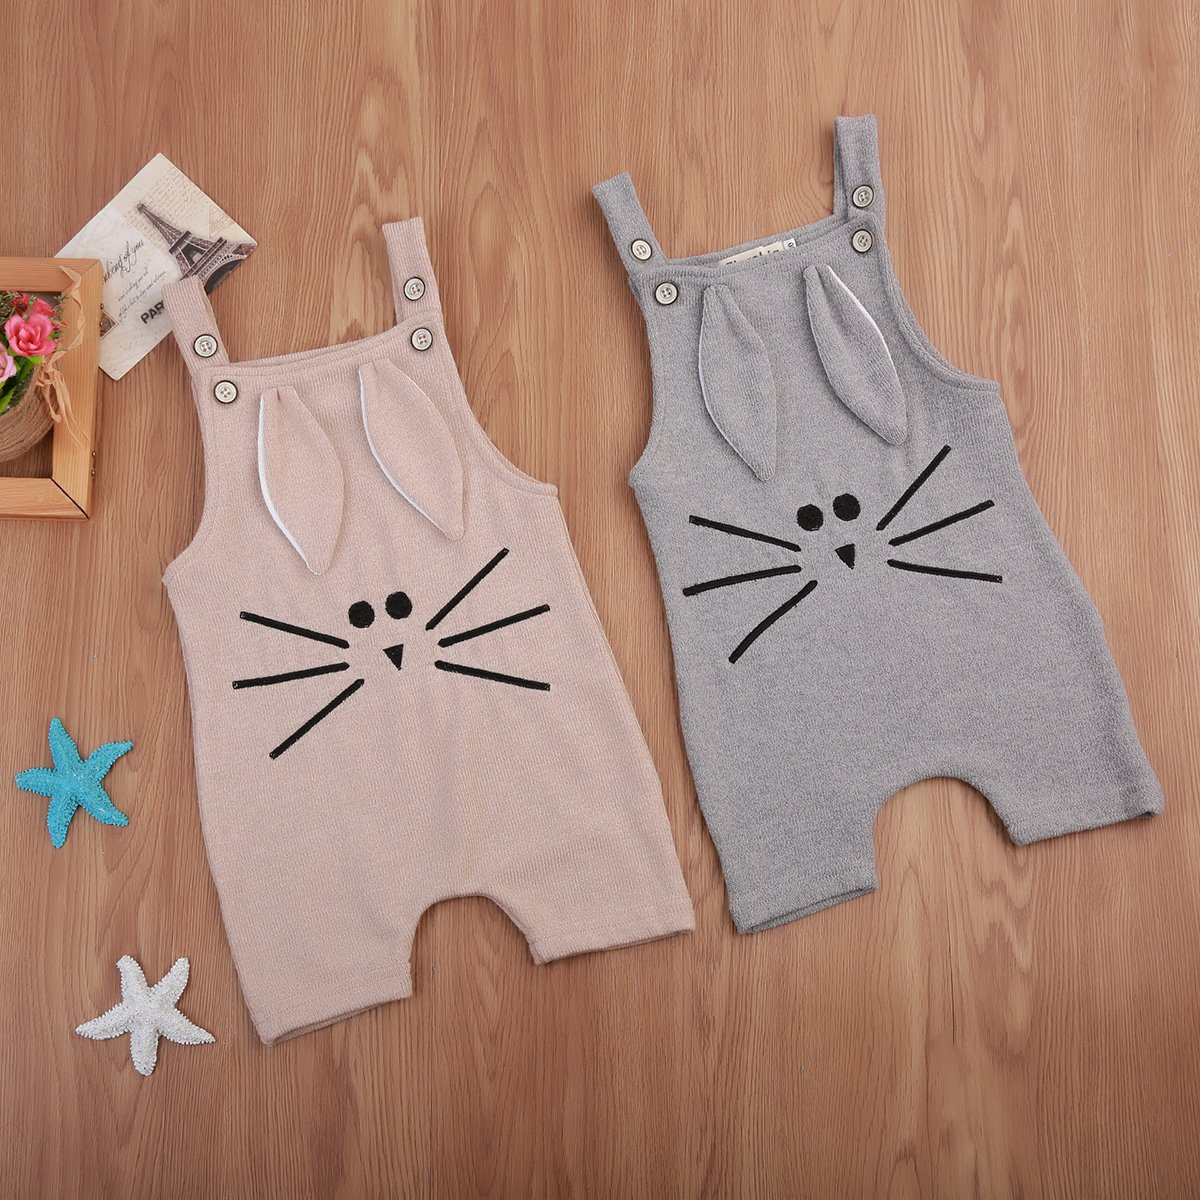 Bunny Whiskers Romper  Buy it today from www.babypetite.com  We sell cute and adorable baby clothing, shoes, socks, bibs, tableware, blankets, clothing sets, dresses, rompers, outfits and many more baby essentials.   Shop our products on Baby Petite today 👶  FREE Worldwide Shipping to over 230+ countries ✈️  www.babypetite.com  #twins #baby #pampers #pregnant #babyclothing #babyboy #mothers #babyclothes #newbornbaby #babytwins